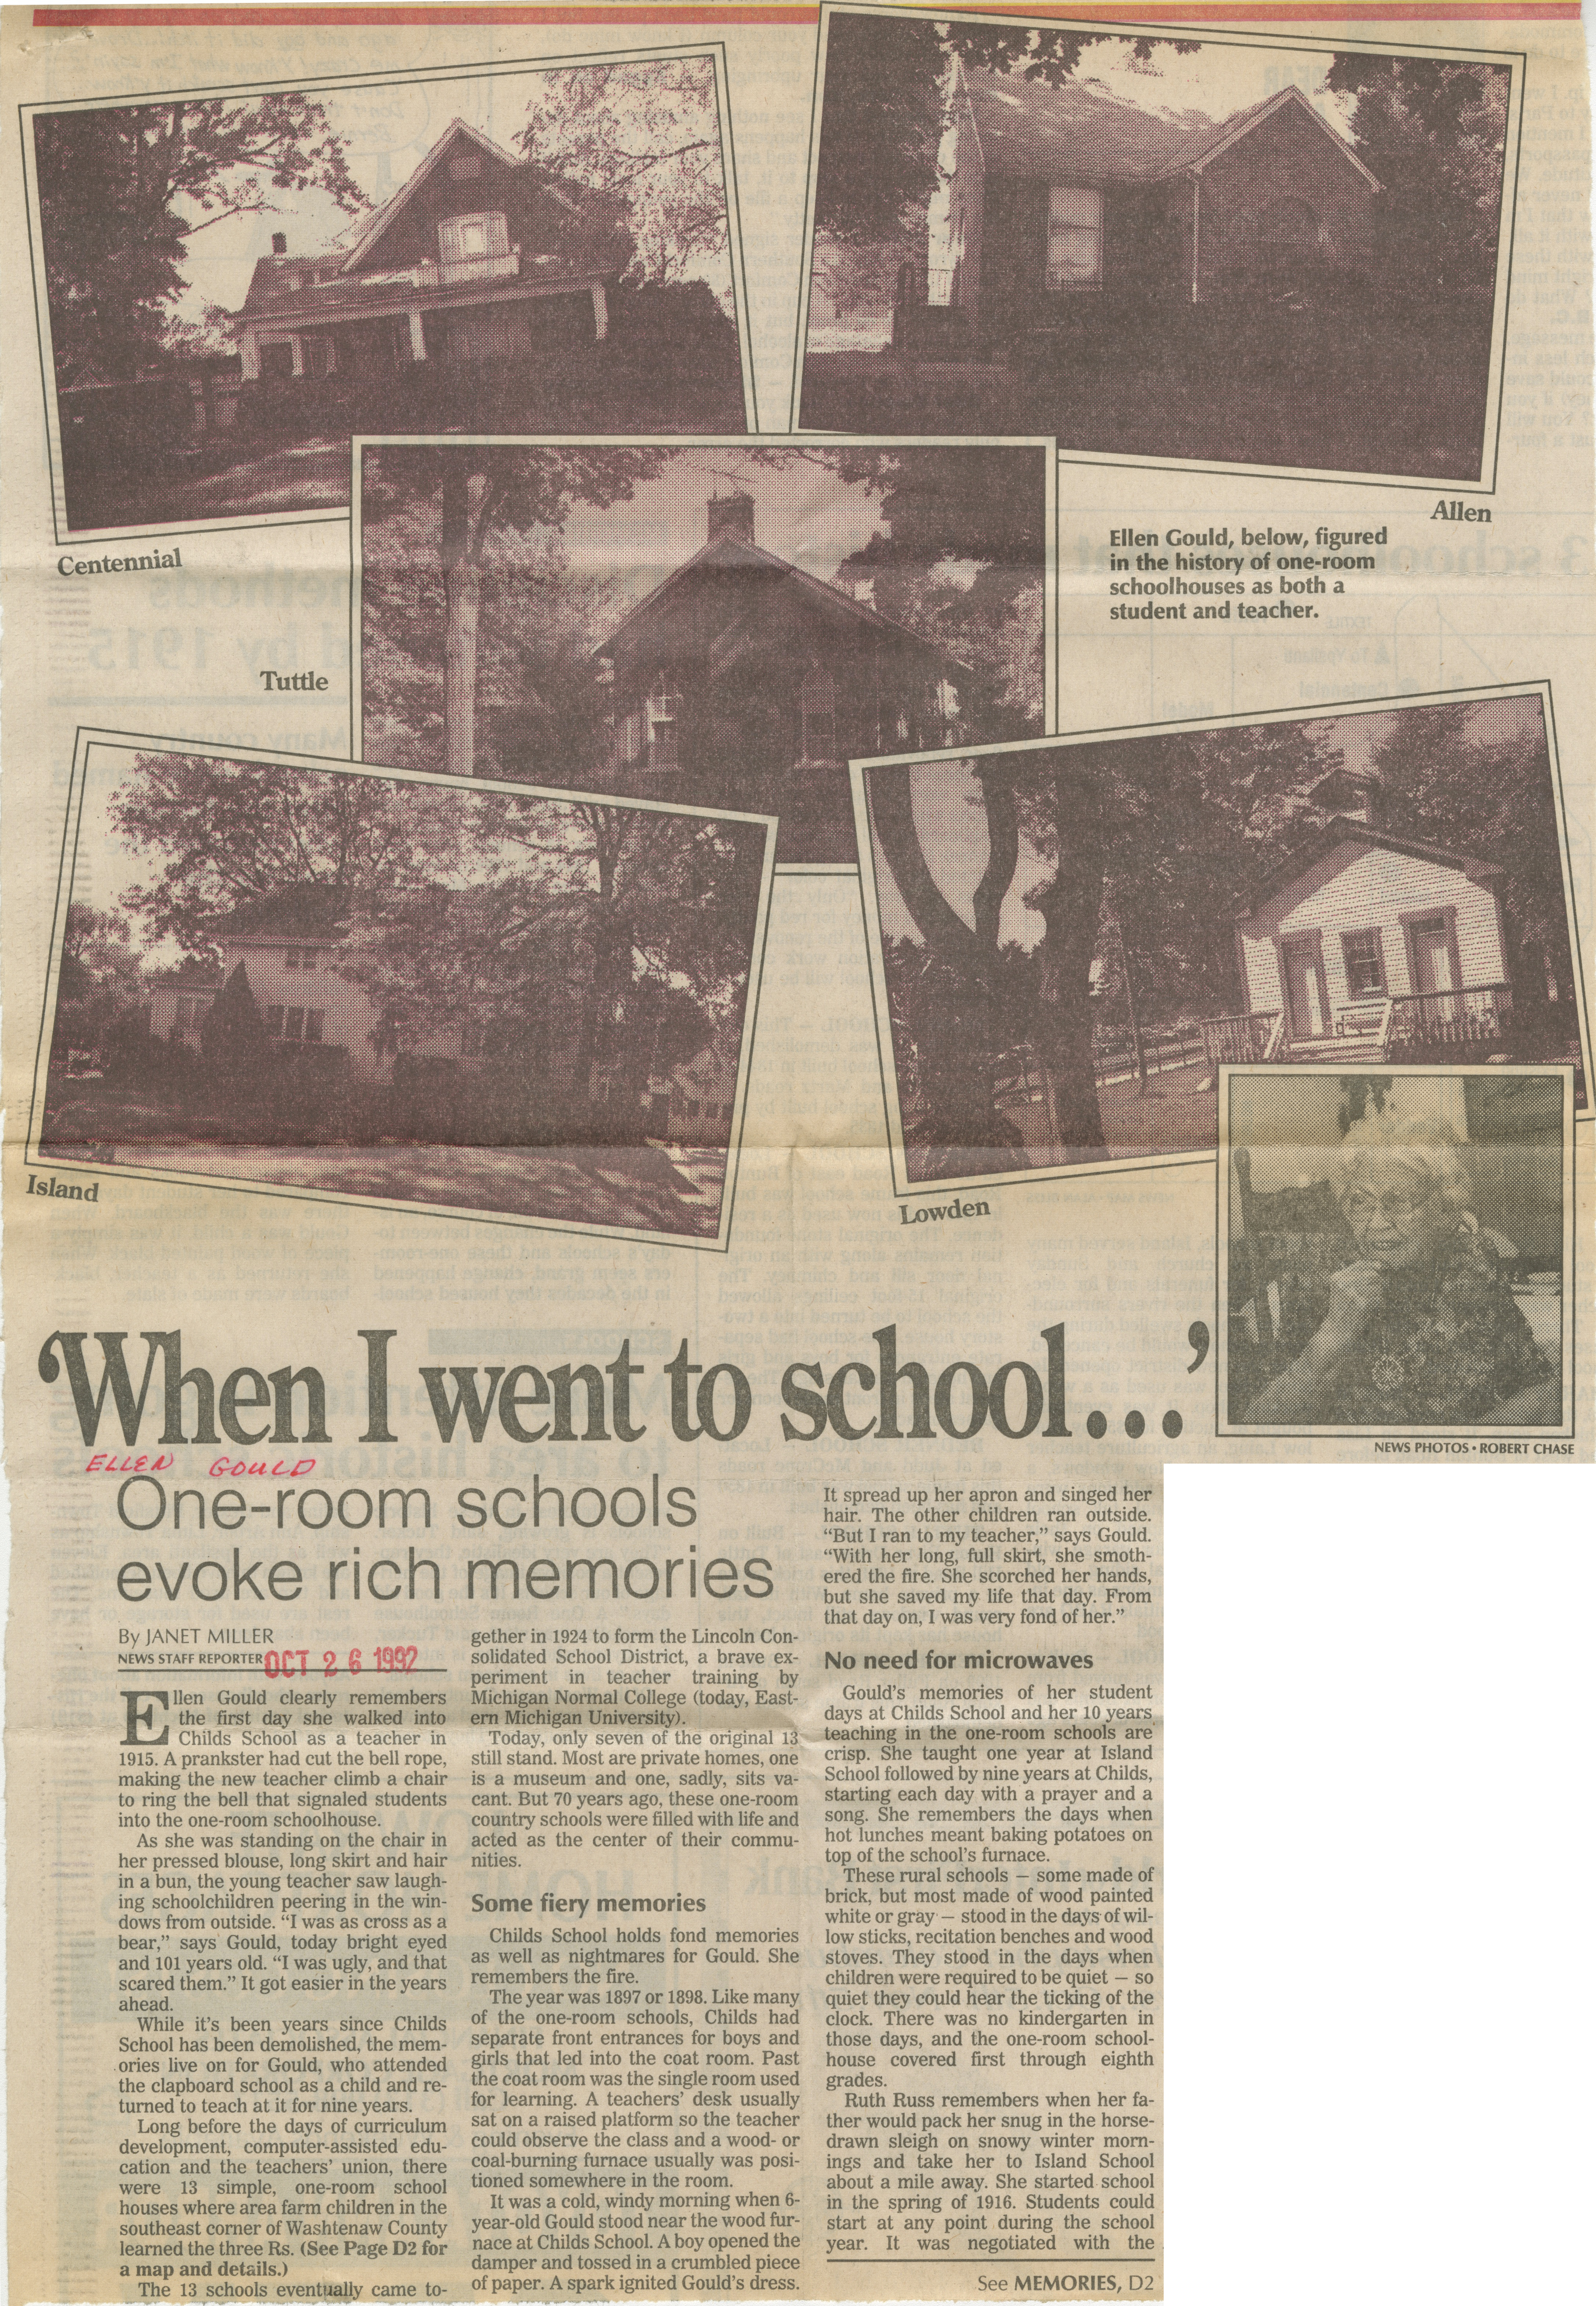 'When I Went To School...' image